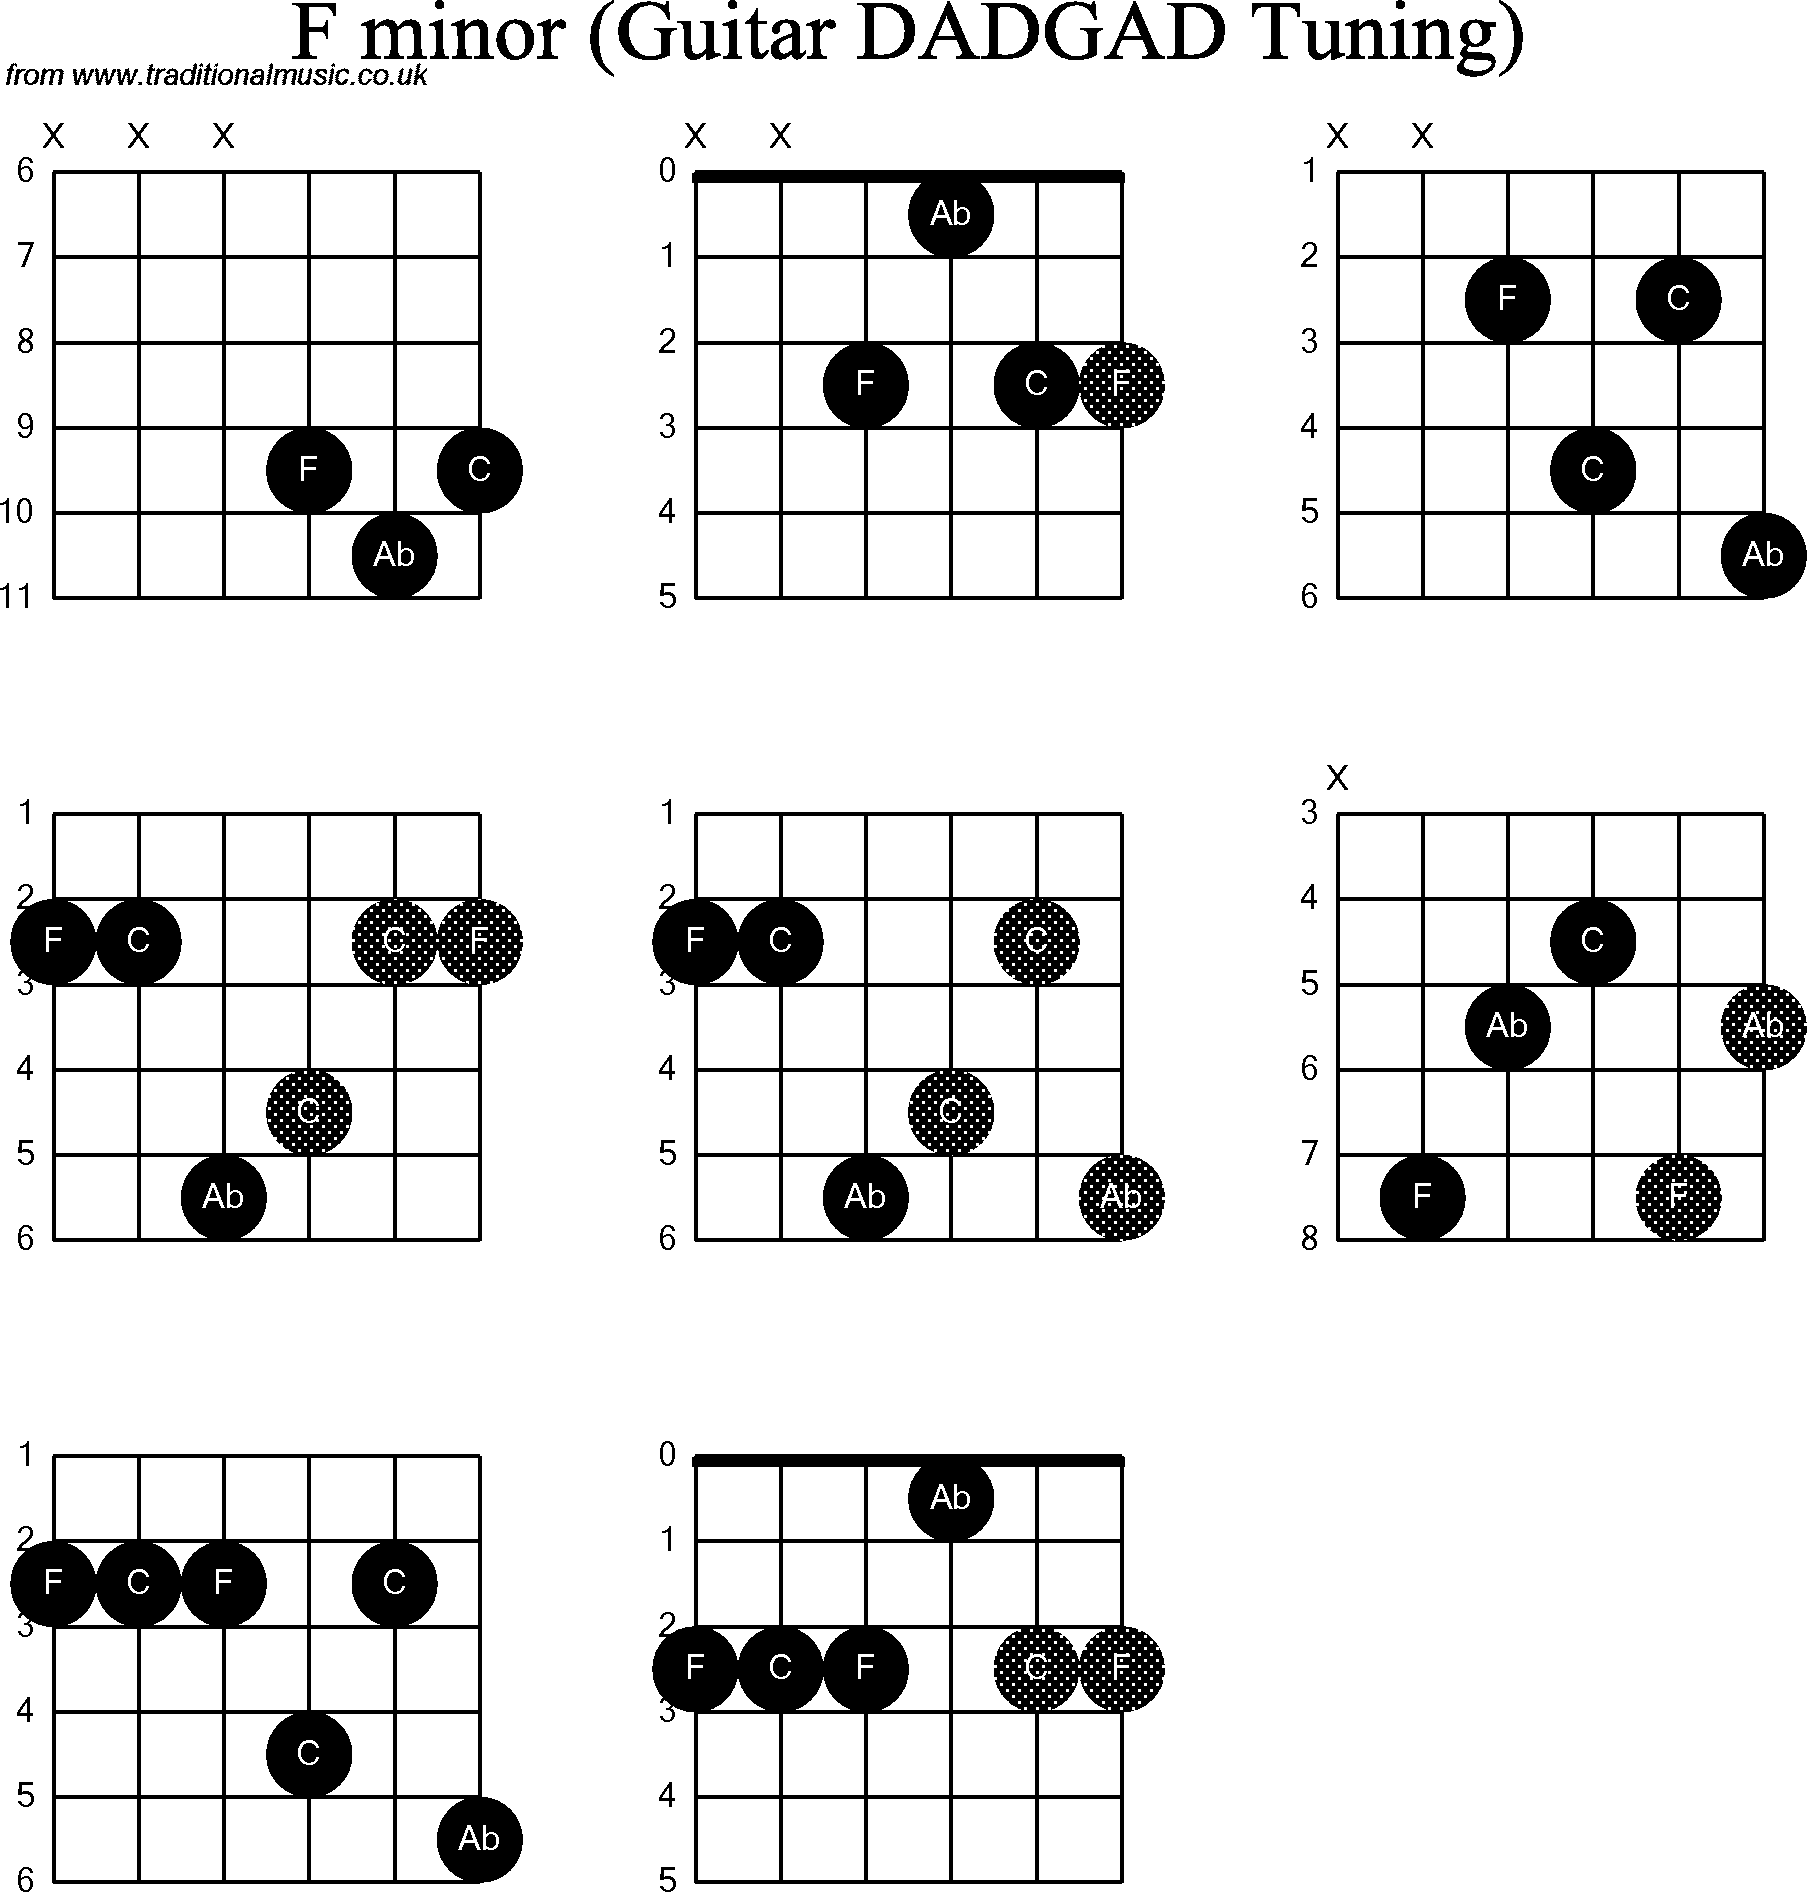 Chord Diagrams D Modal Guitar Dadgad F Minor